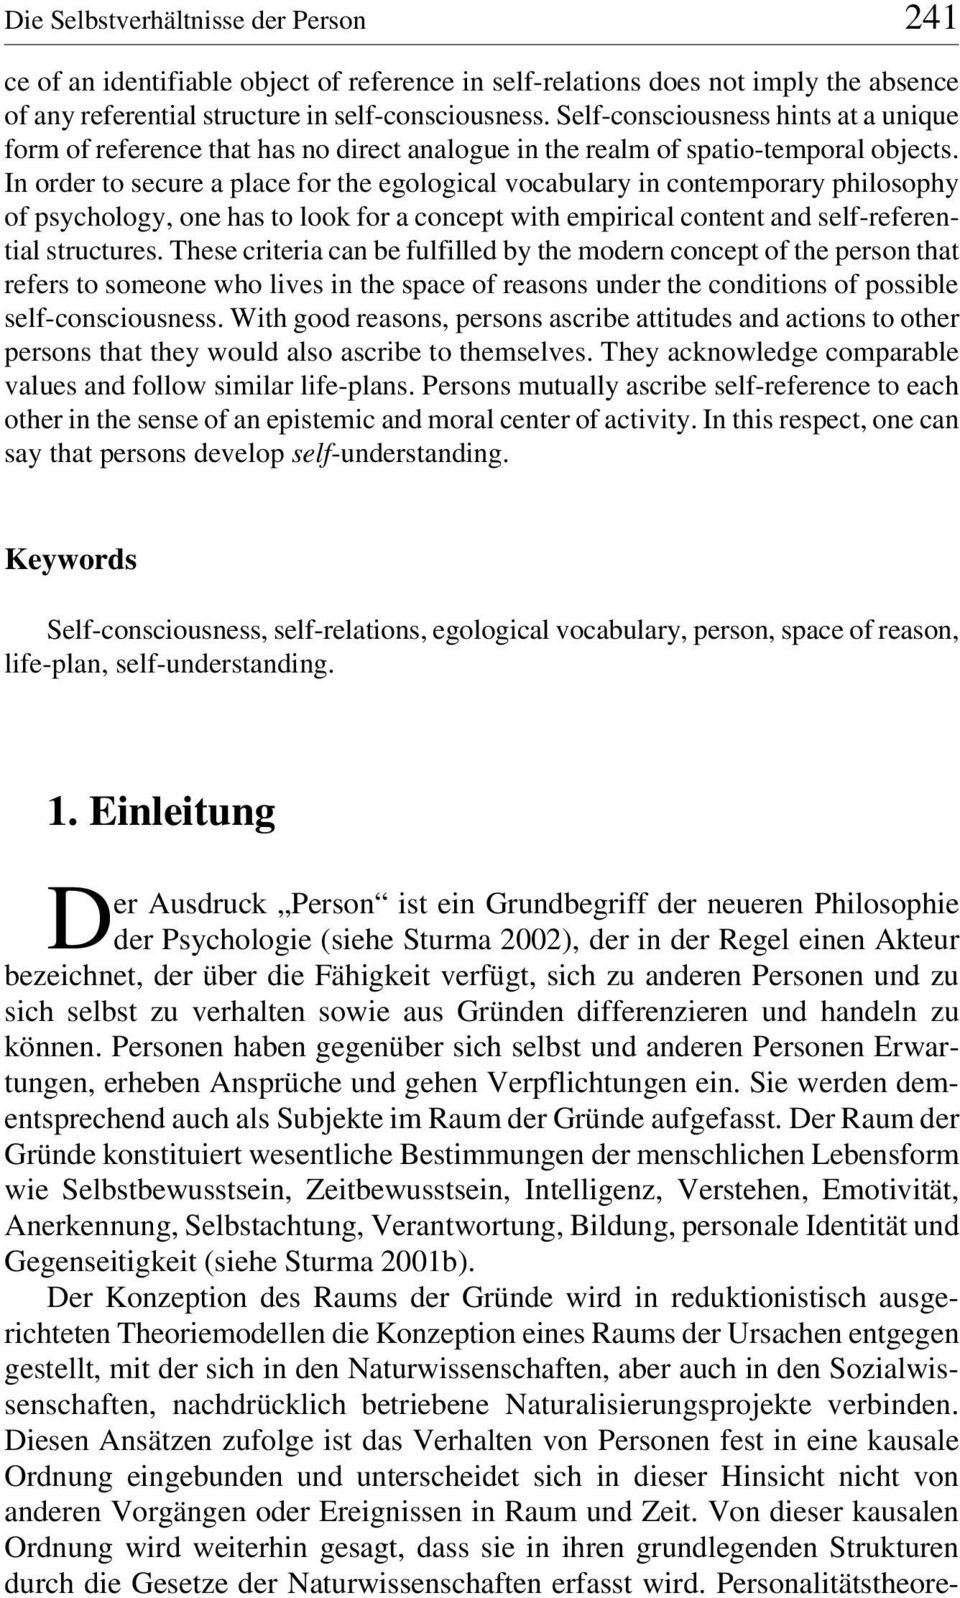 In order to secure a place for the egological vocabulary in contemporary philosophy of psychology, one has to look for a concept with empirical content and self-referential structures.